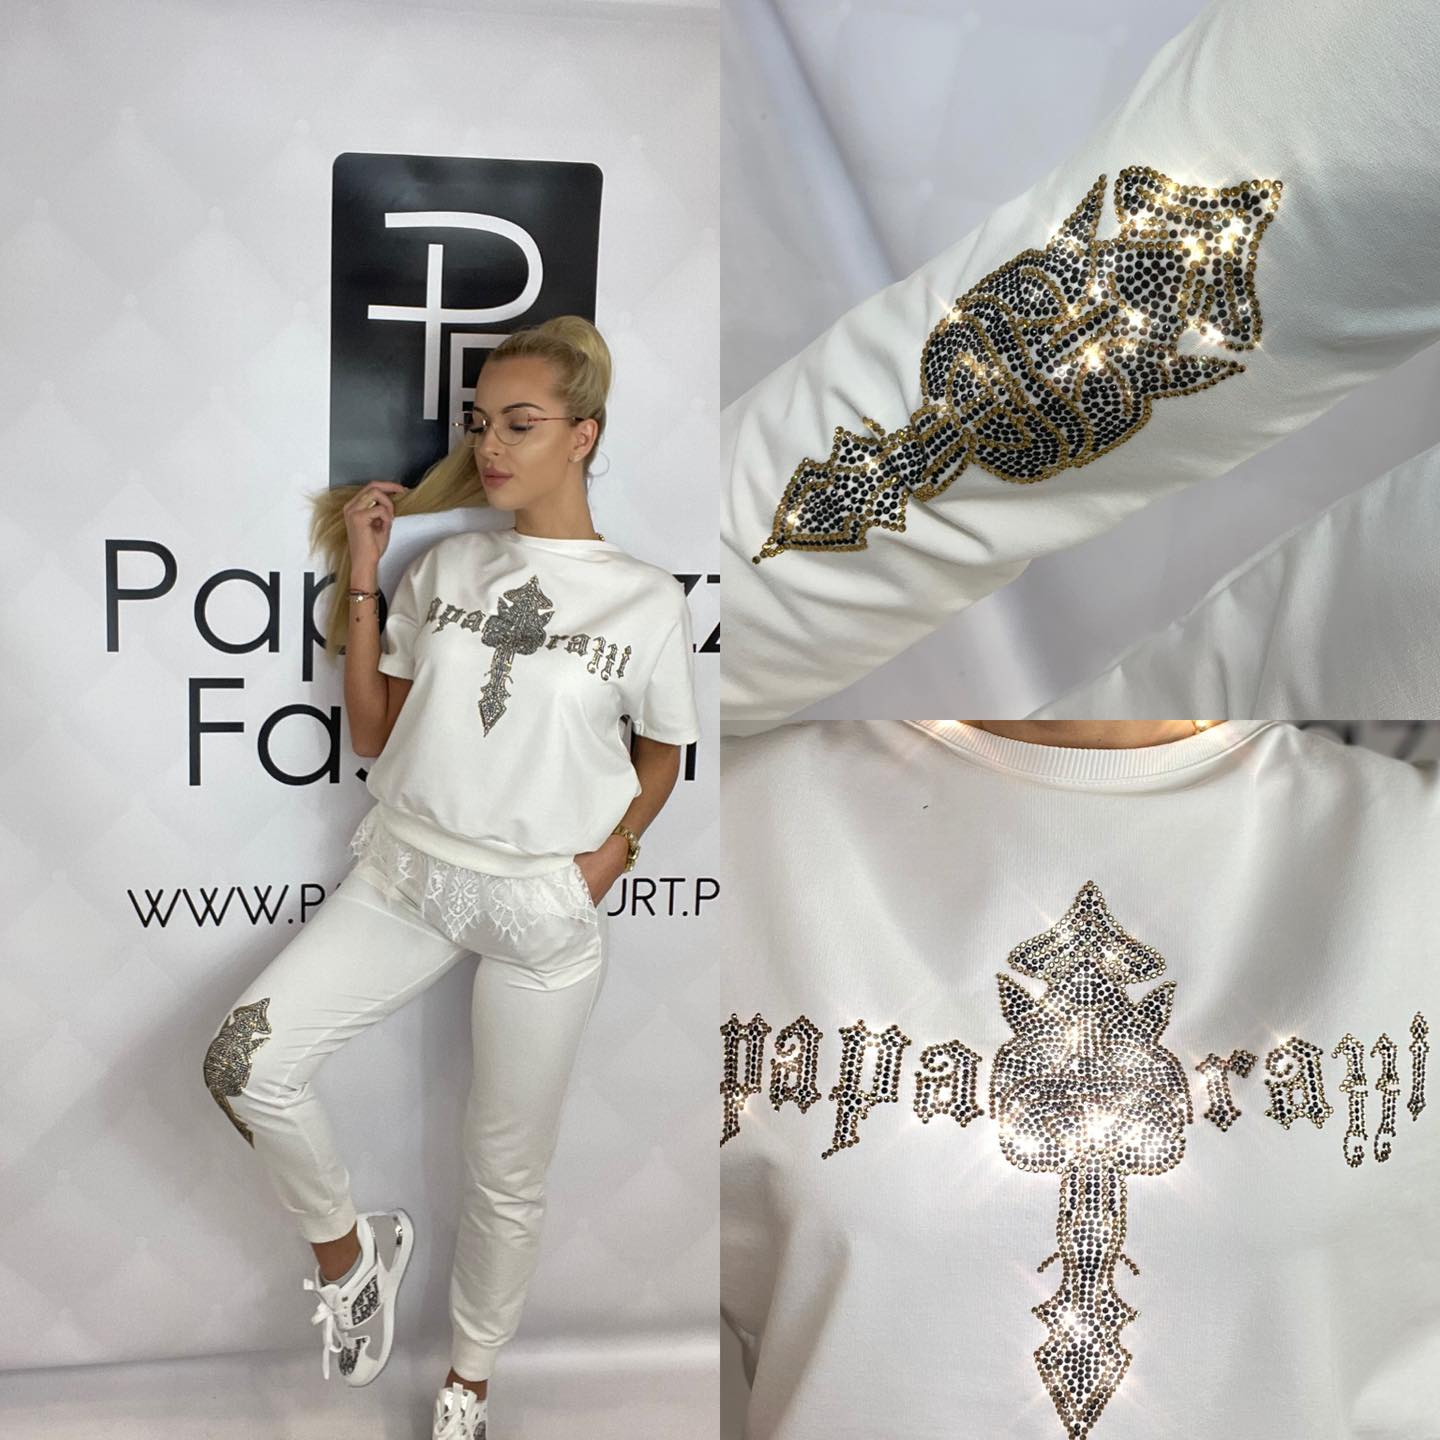 Biely set krajka by Paparazzi fashion